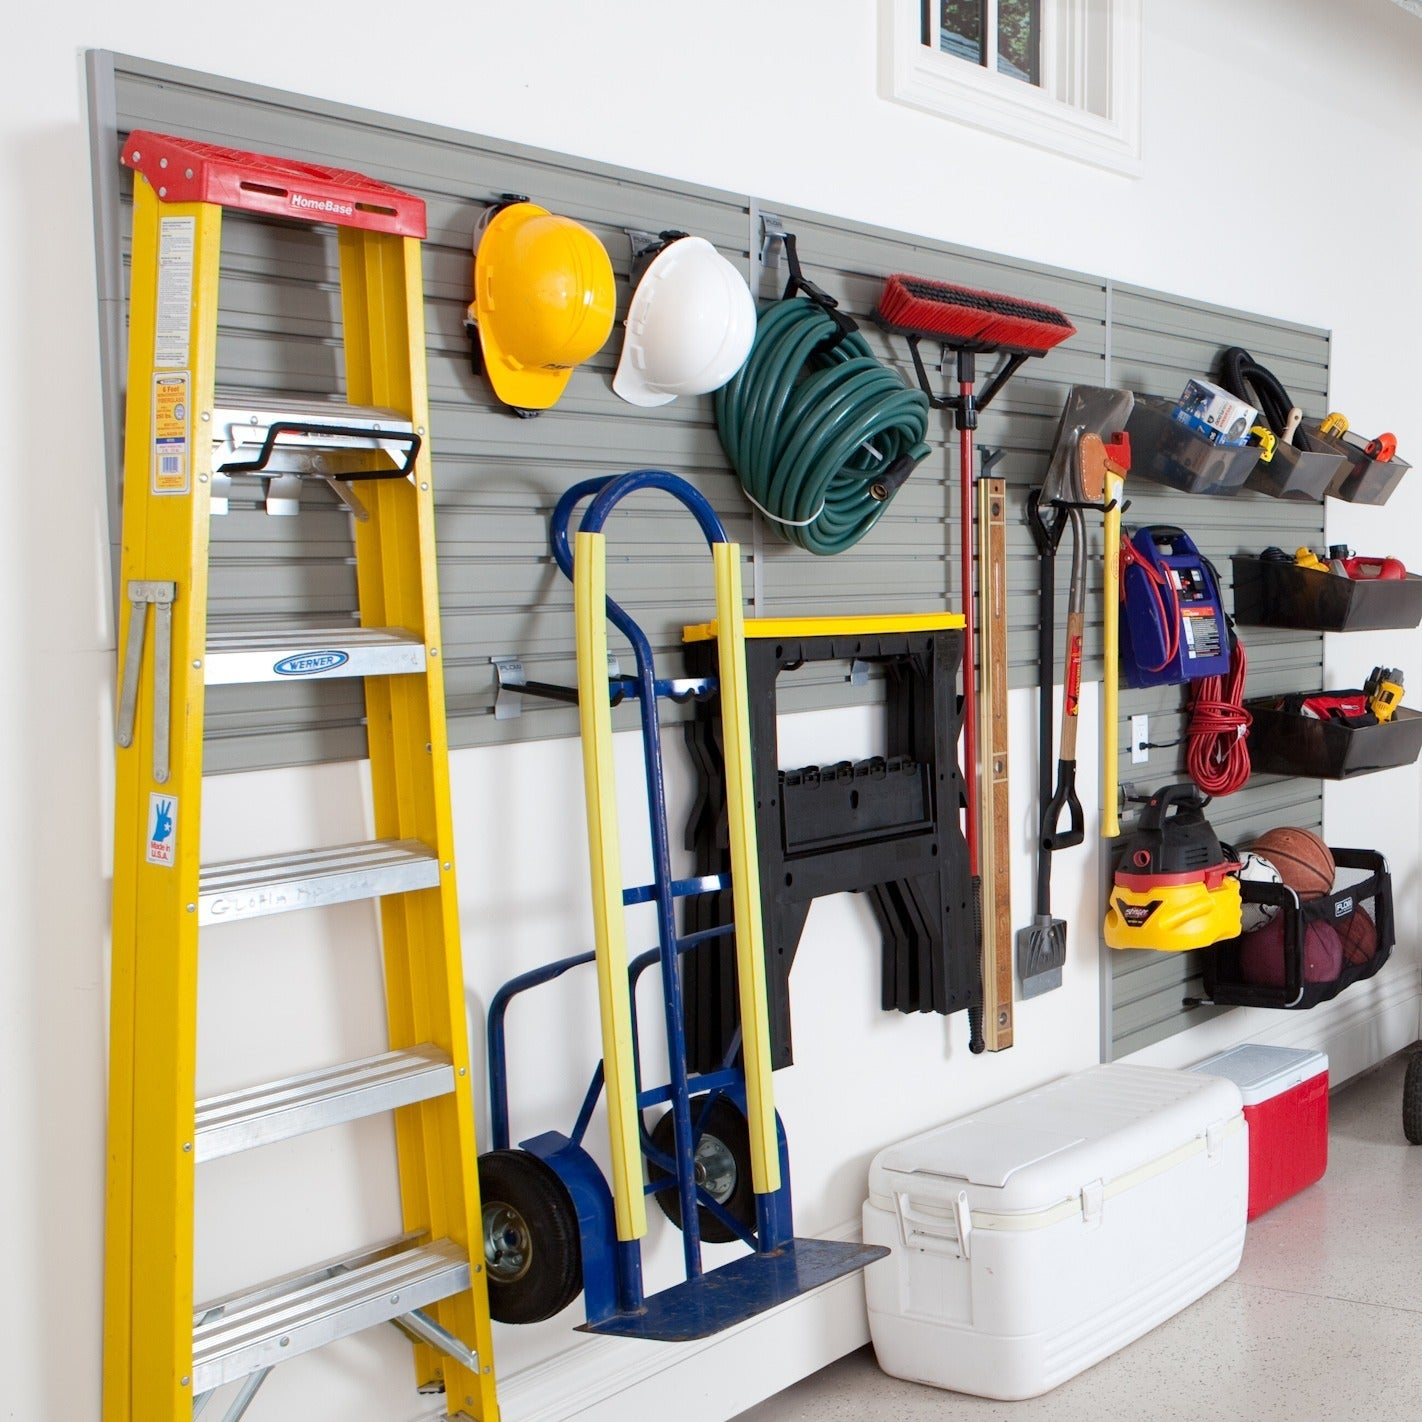 Flow Wall 48 foot Garage and Hardware Storage System Free